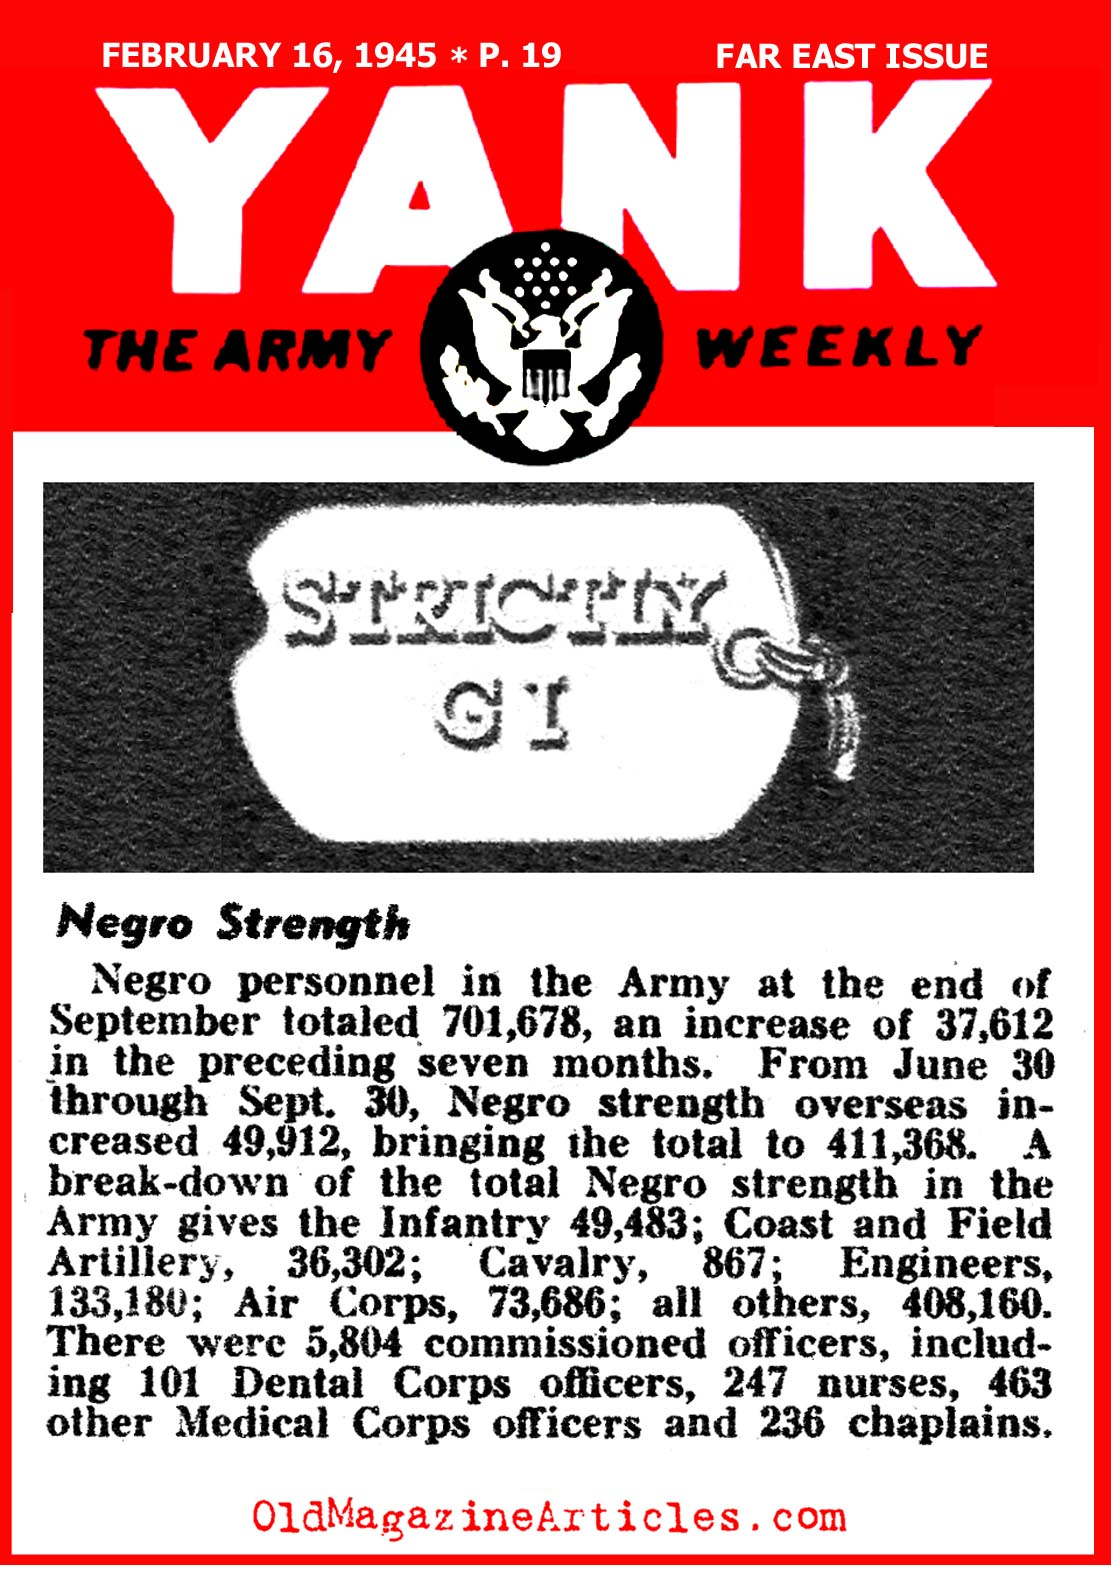 African-Americans in the U.S. Army (Yank Magazine, 1945)